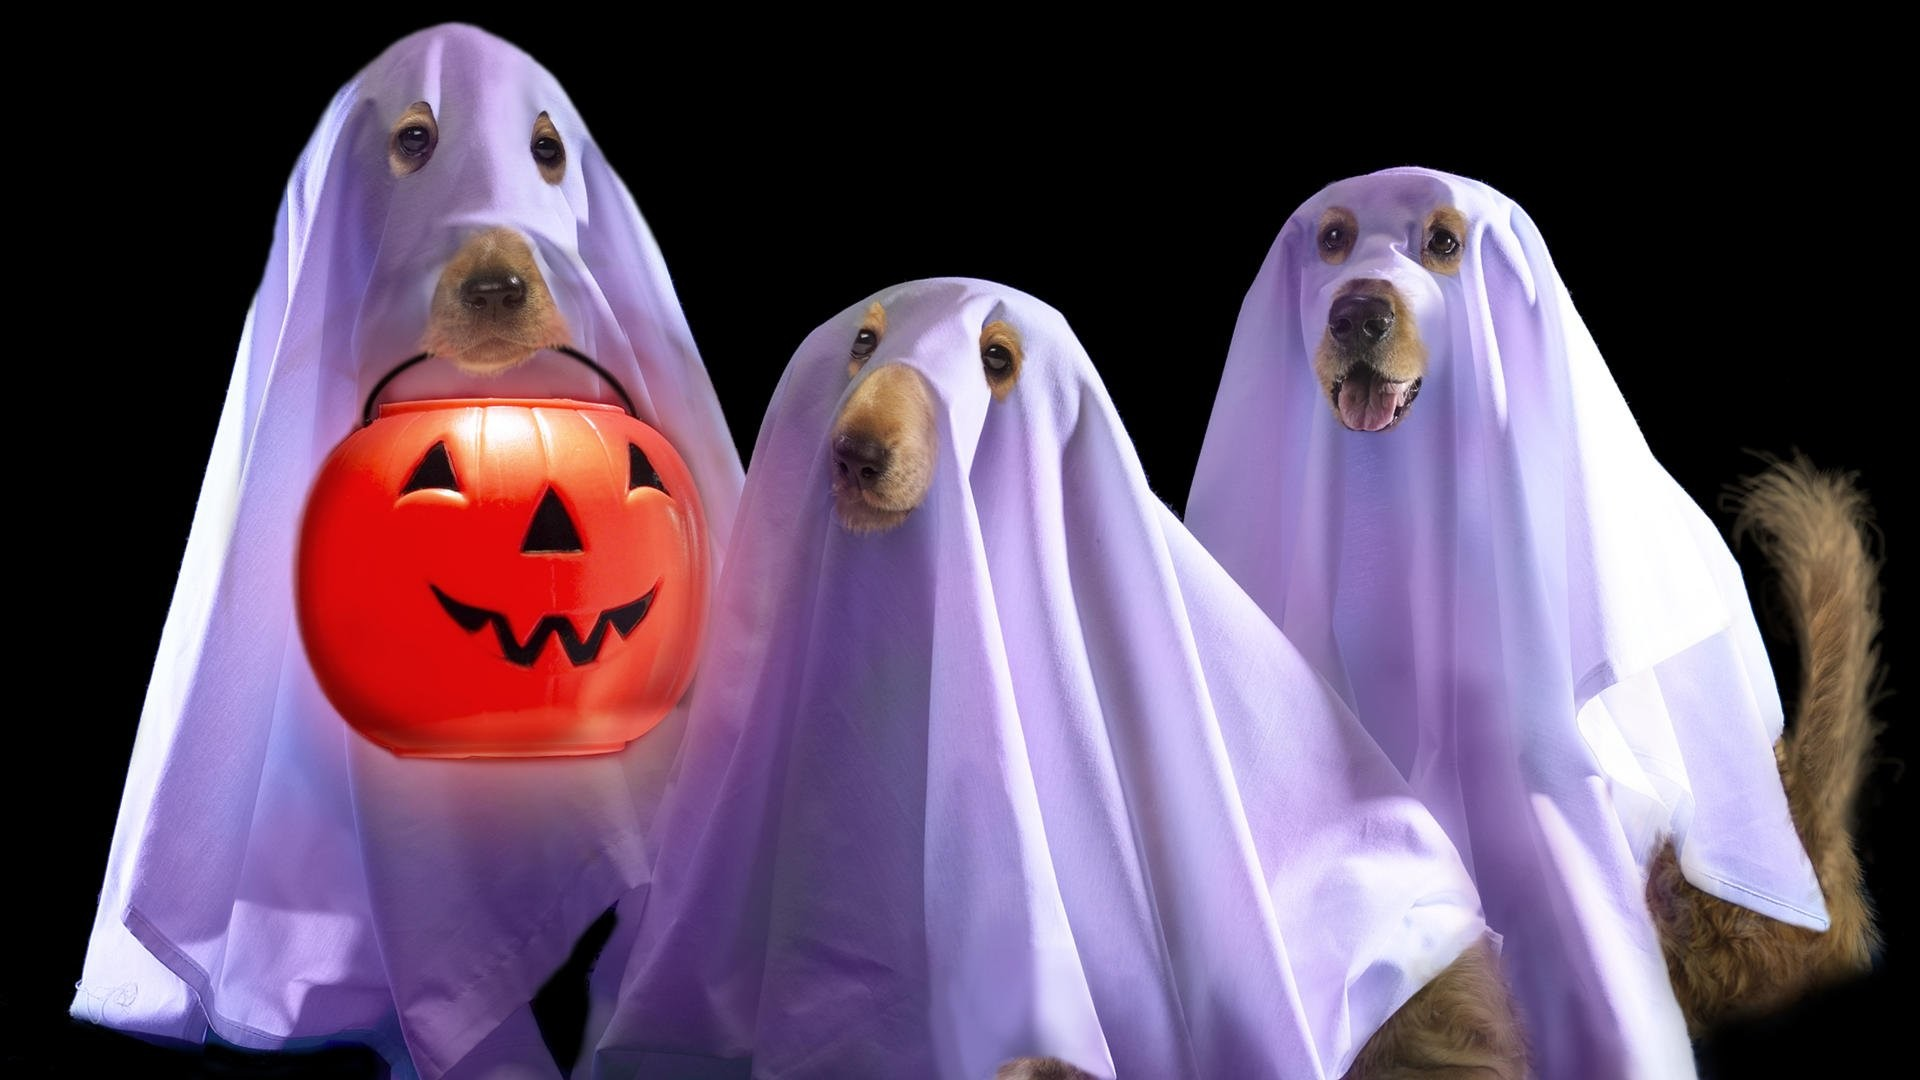 Beautiful Wallpaper High Resolution Halloween - 486781  Snapshot_5206.jpg